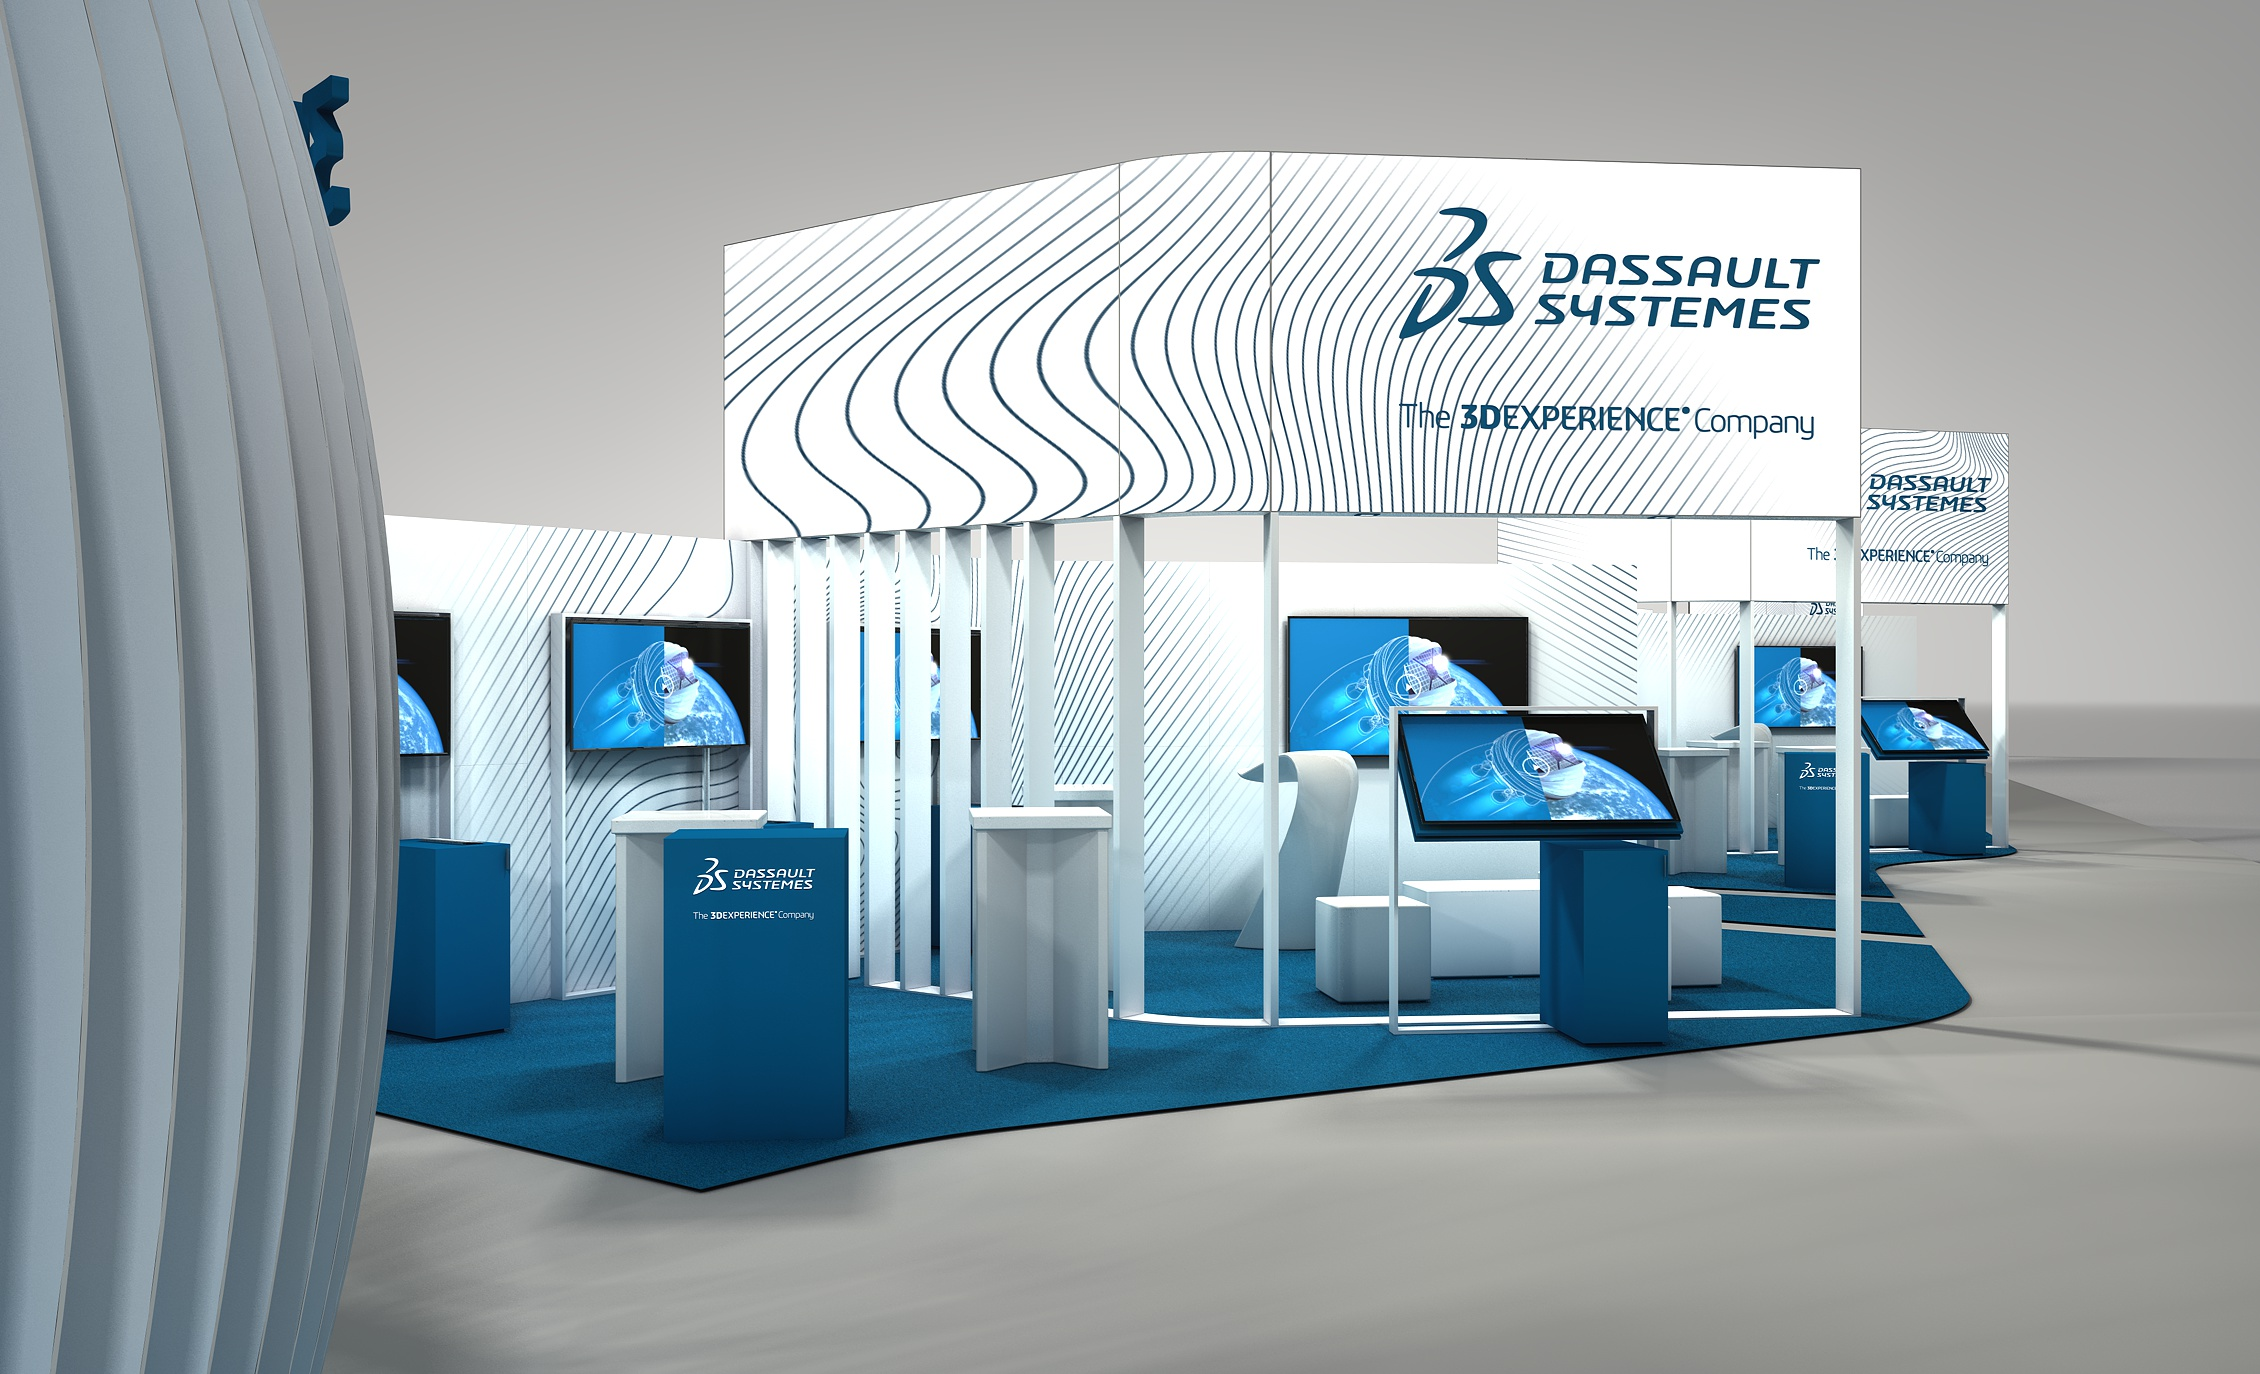 PROJET DASSAULT 3DXF STAND BOOTH 01.jpg